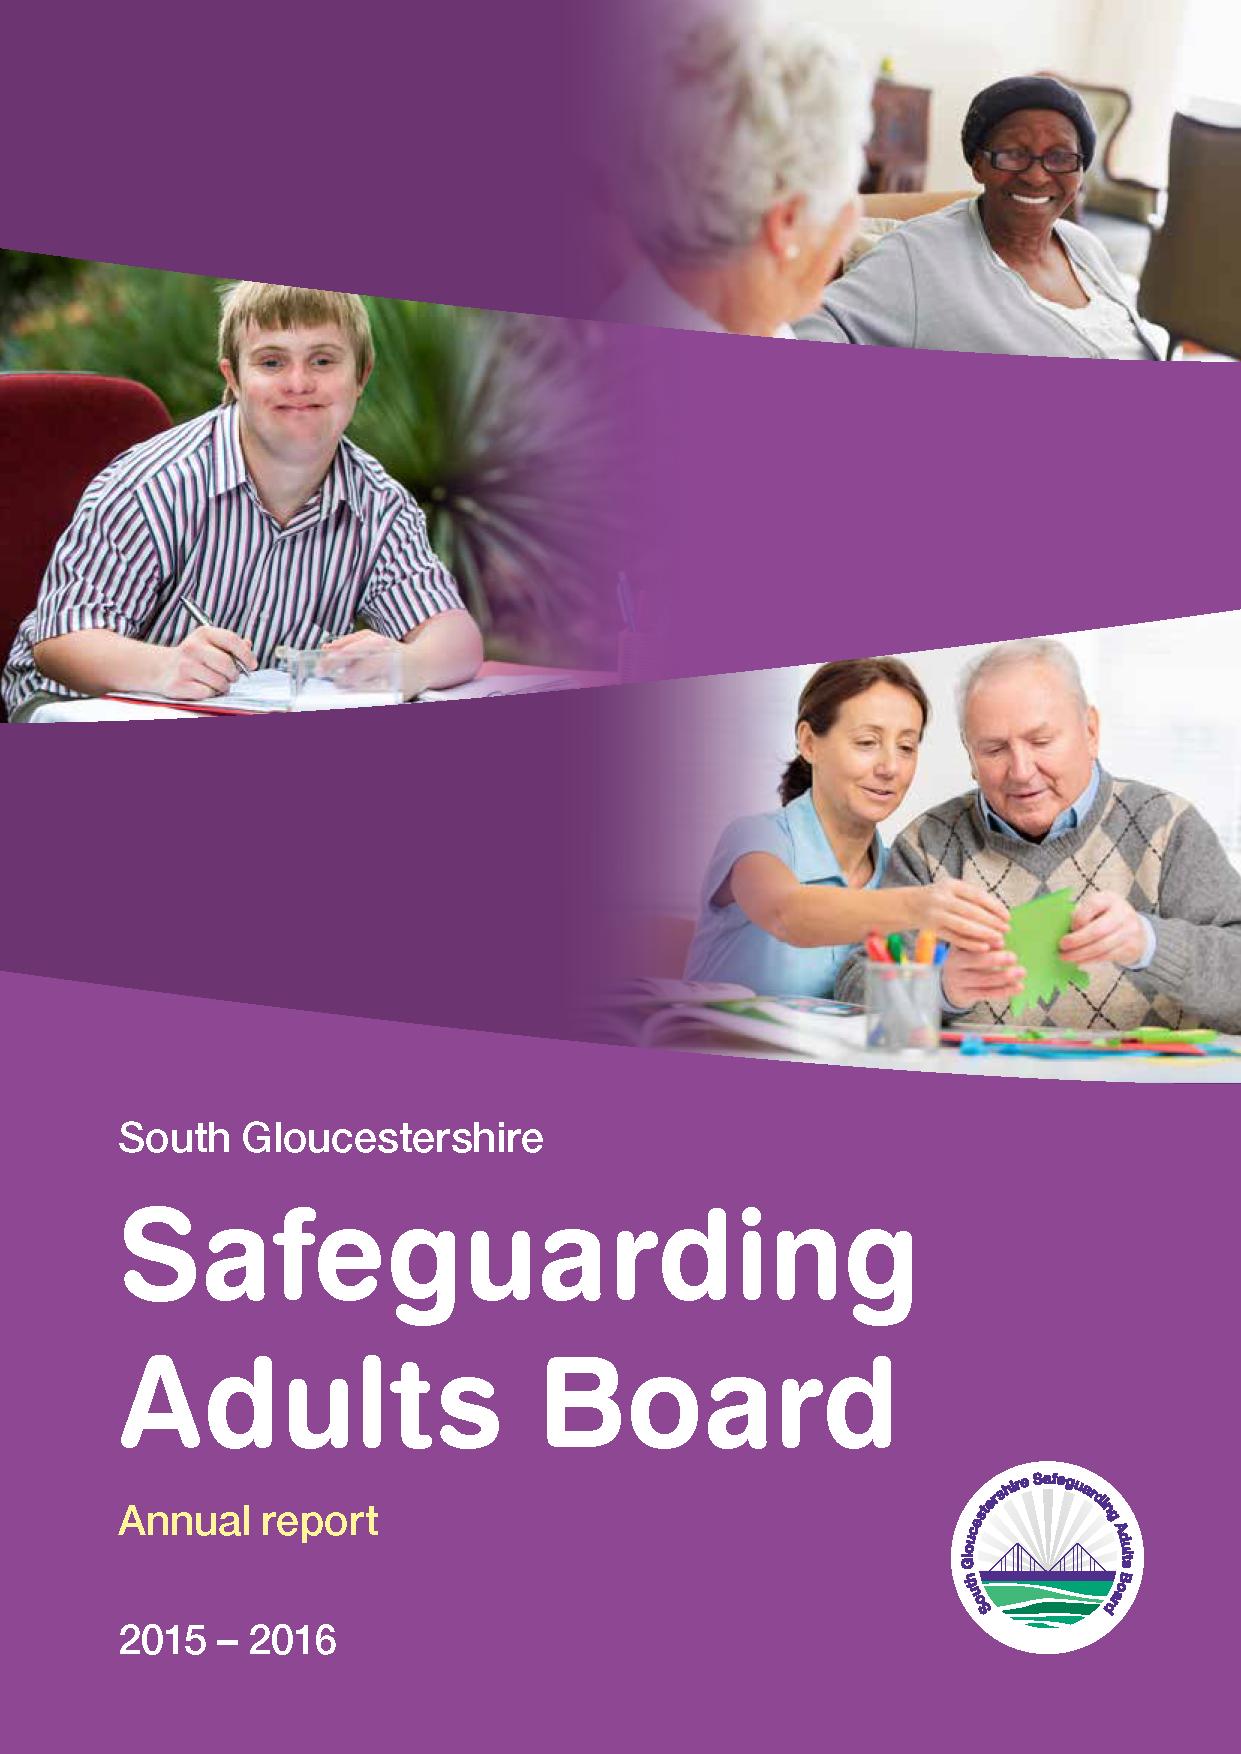 South Gloucestershire Safeguarding Children Board Annual Report 2015/16